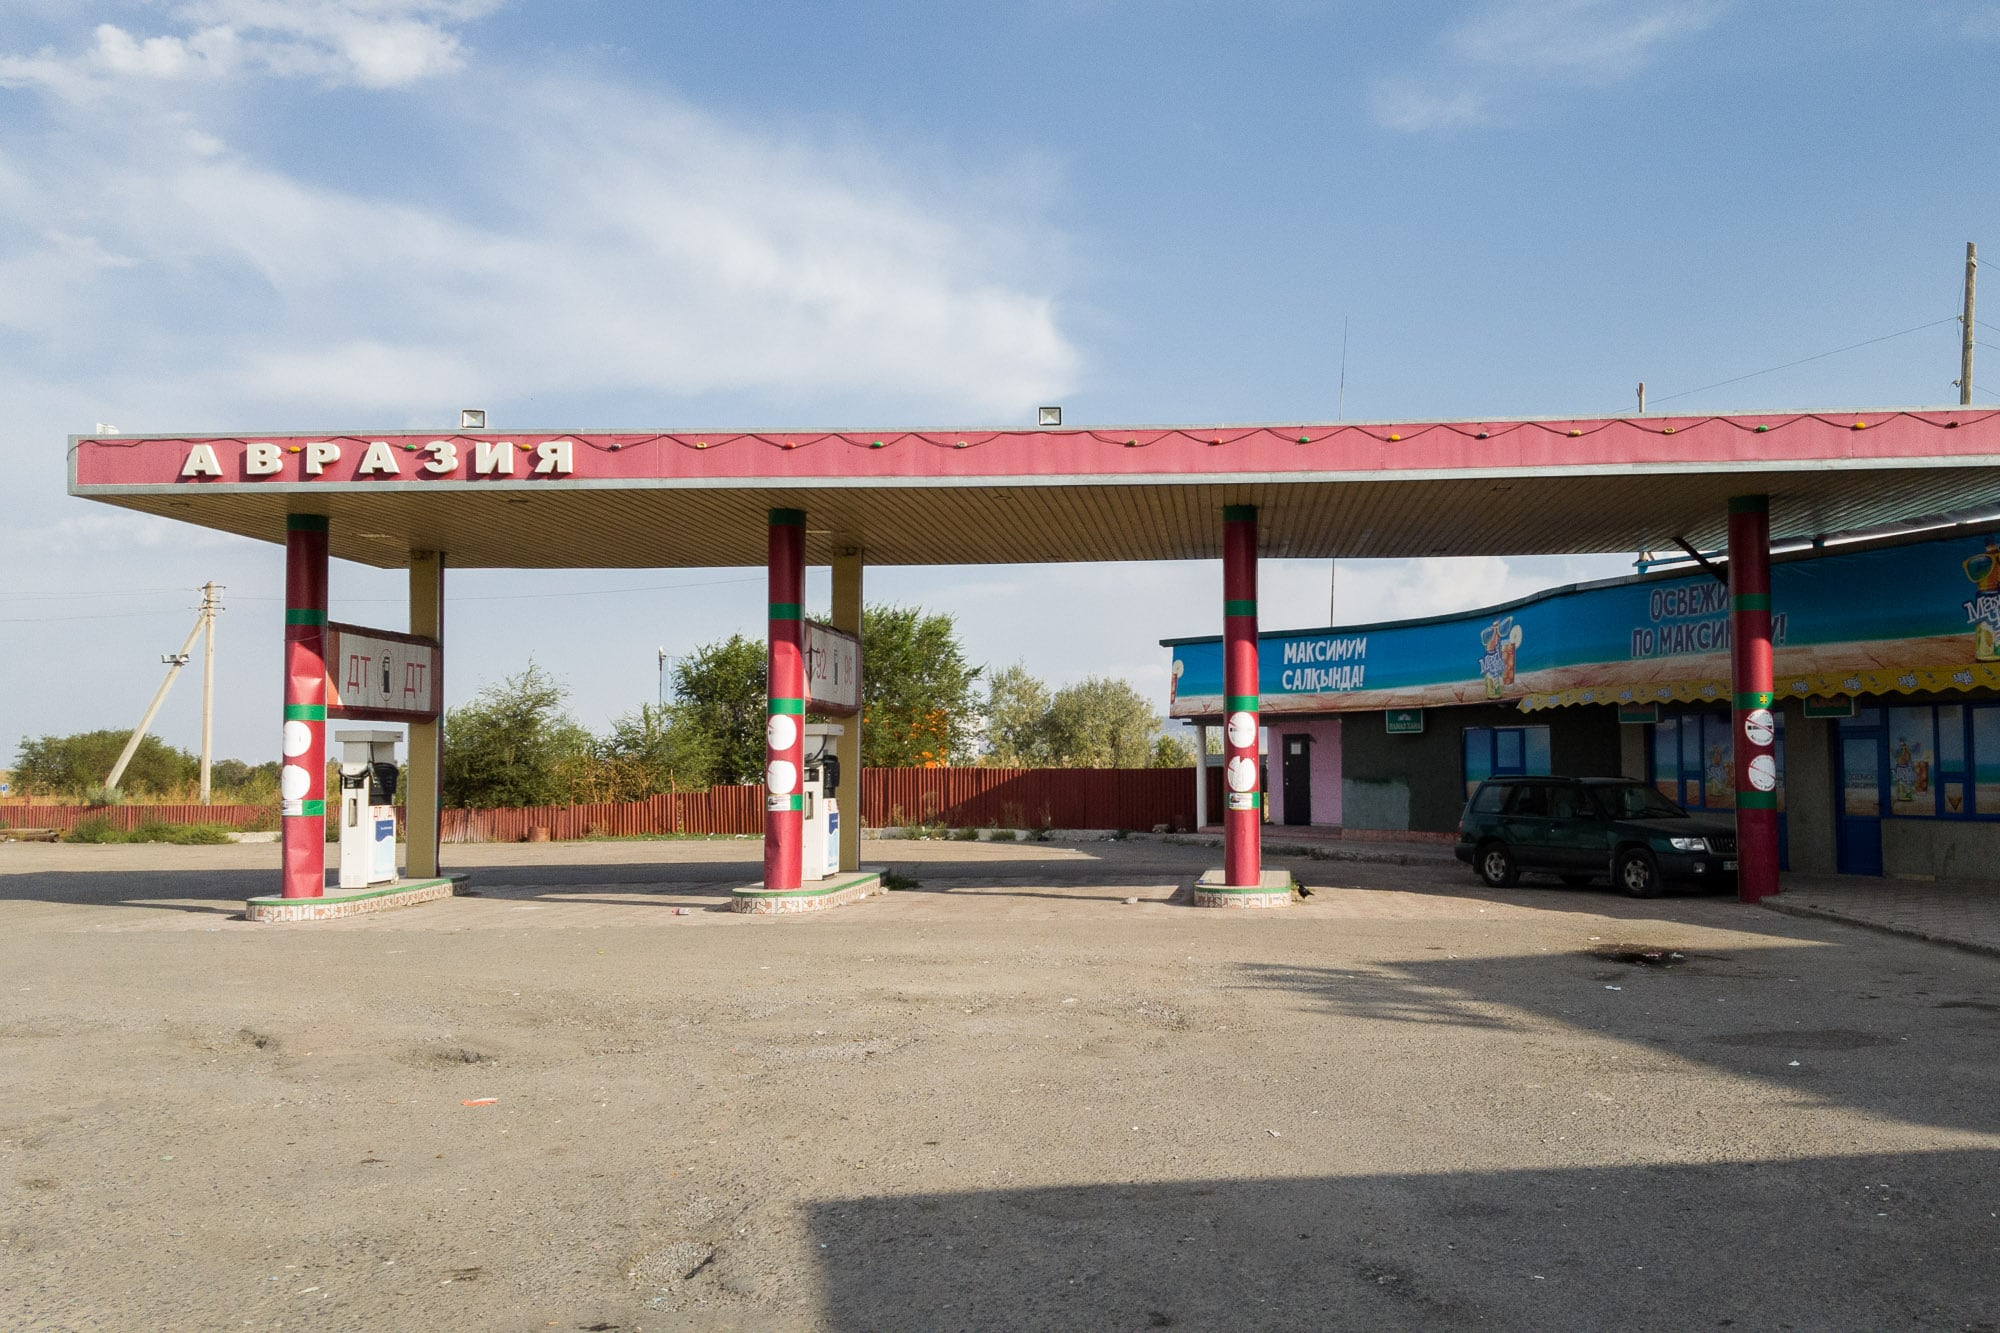 Avrazia gas station and shop